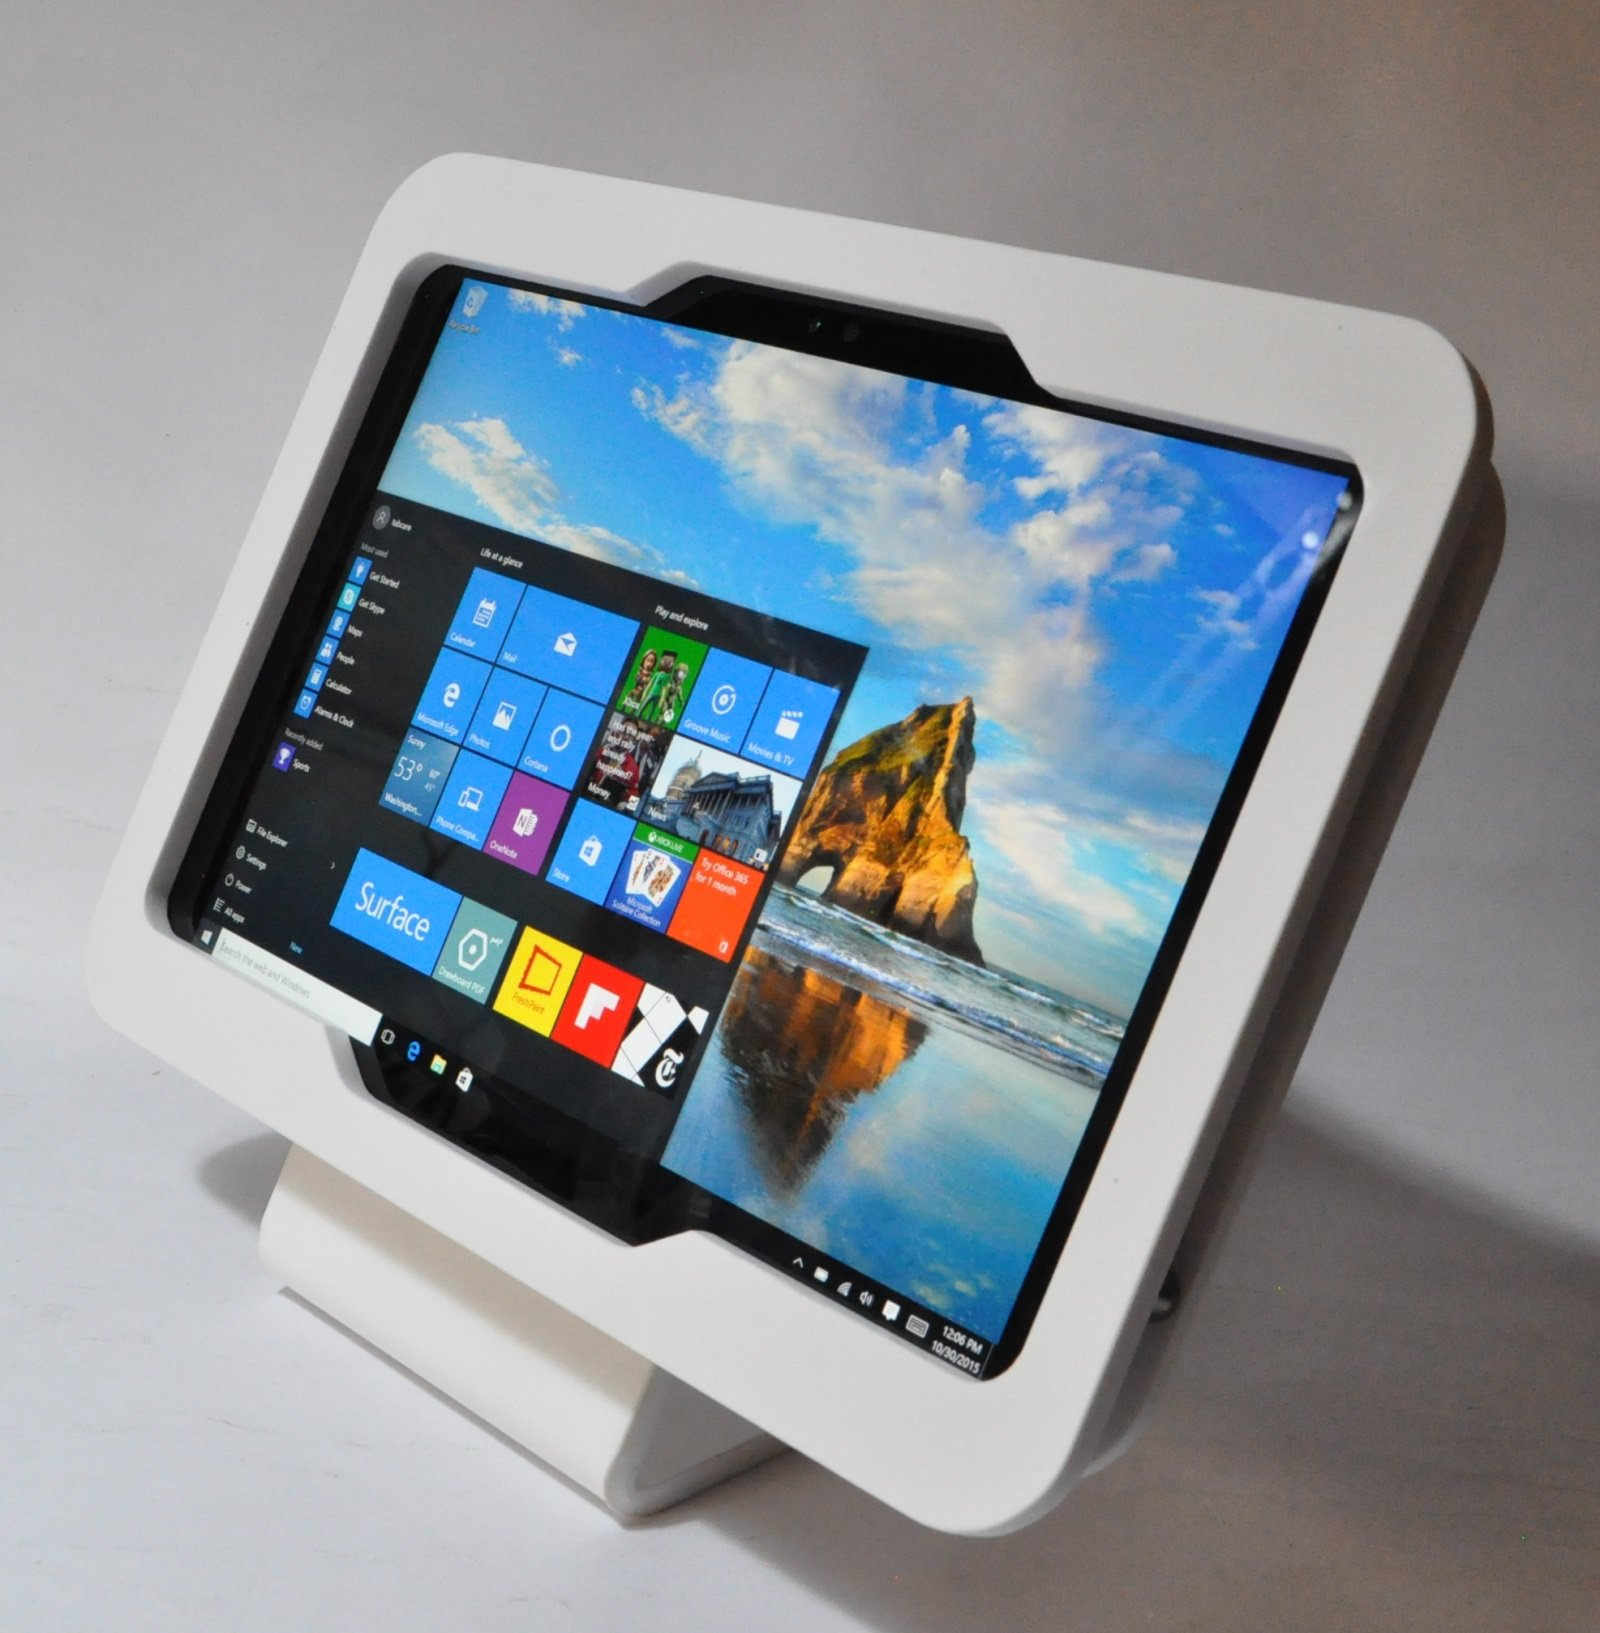 TABcare Compatible MS Surface Pro 3 White Acrylic Desktop Stand for Store Display, Show Display, Kiosk, POS